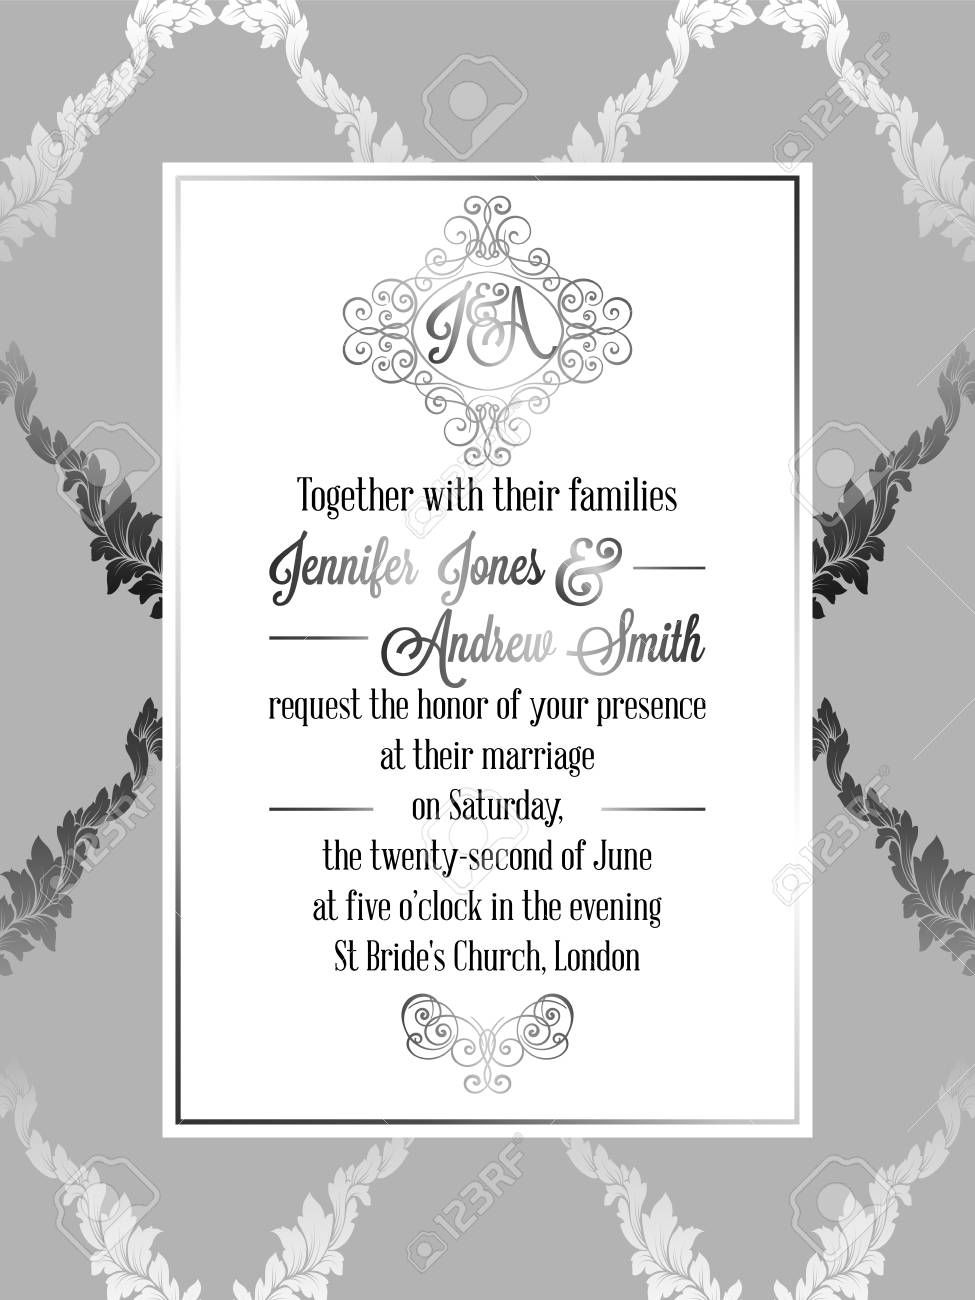 005 Wonderful Formal Wedding Invitation Template Concept  Templates Email Format Wording FreeFull